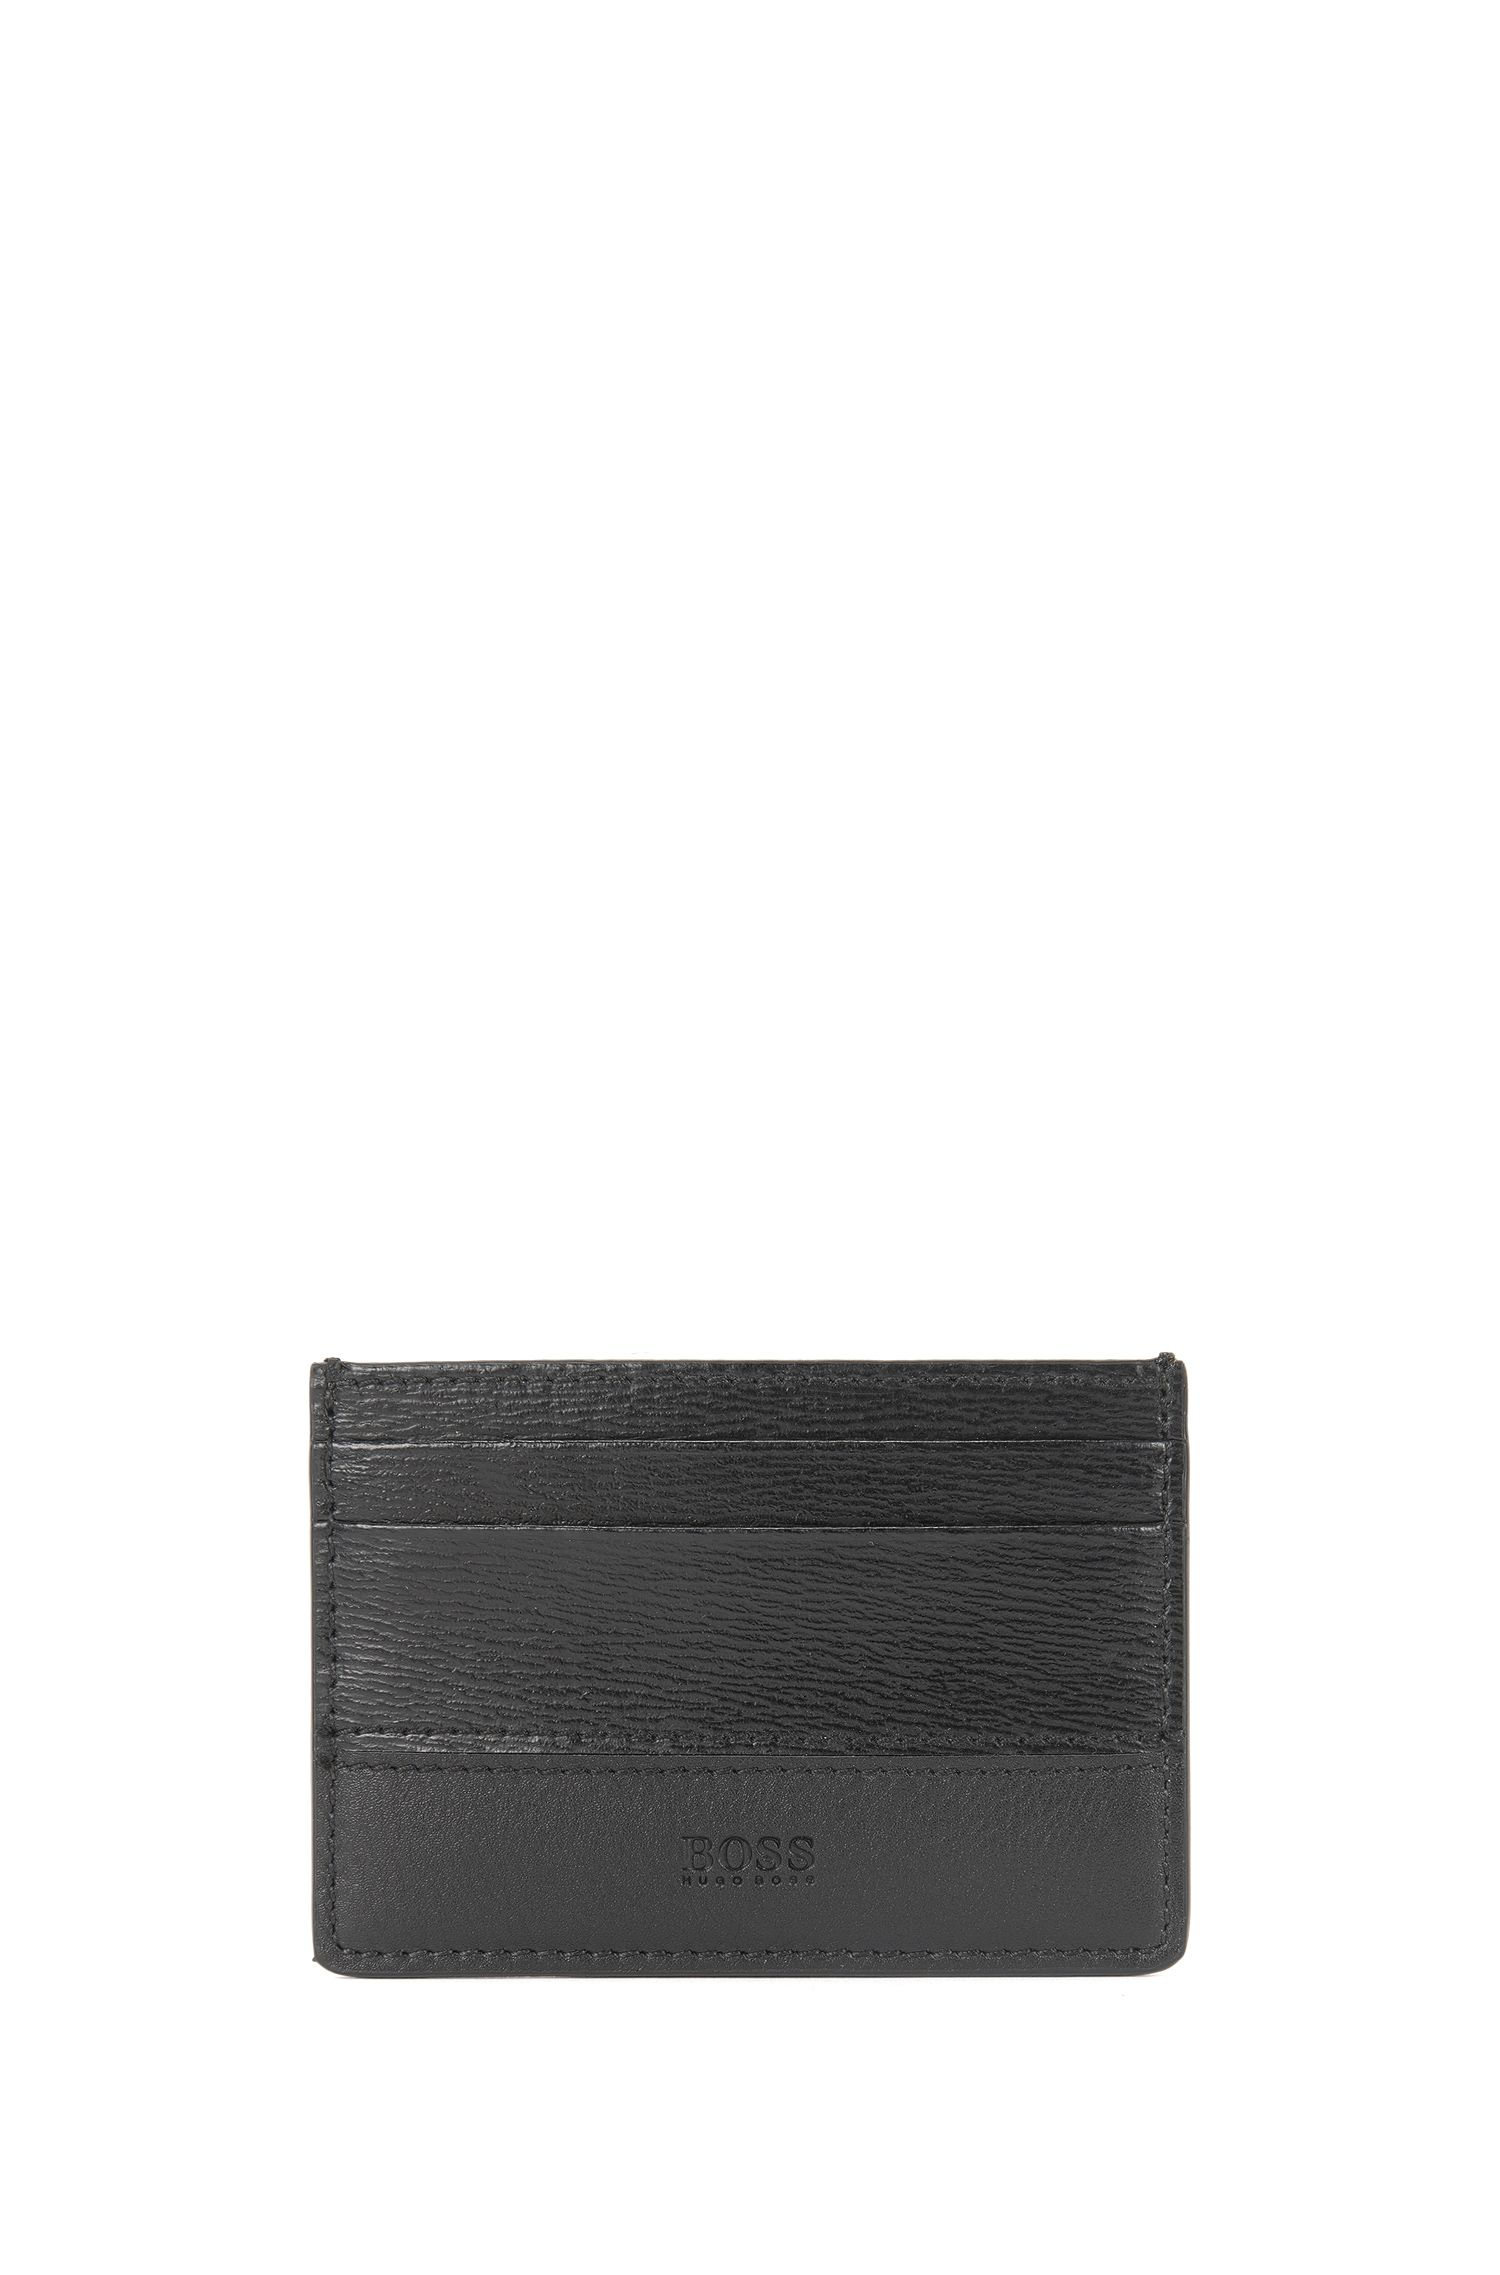 Leather Card Holder | Foxus S Card